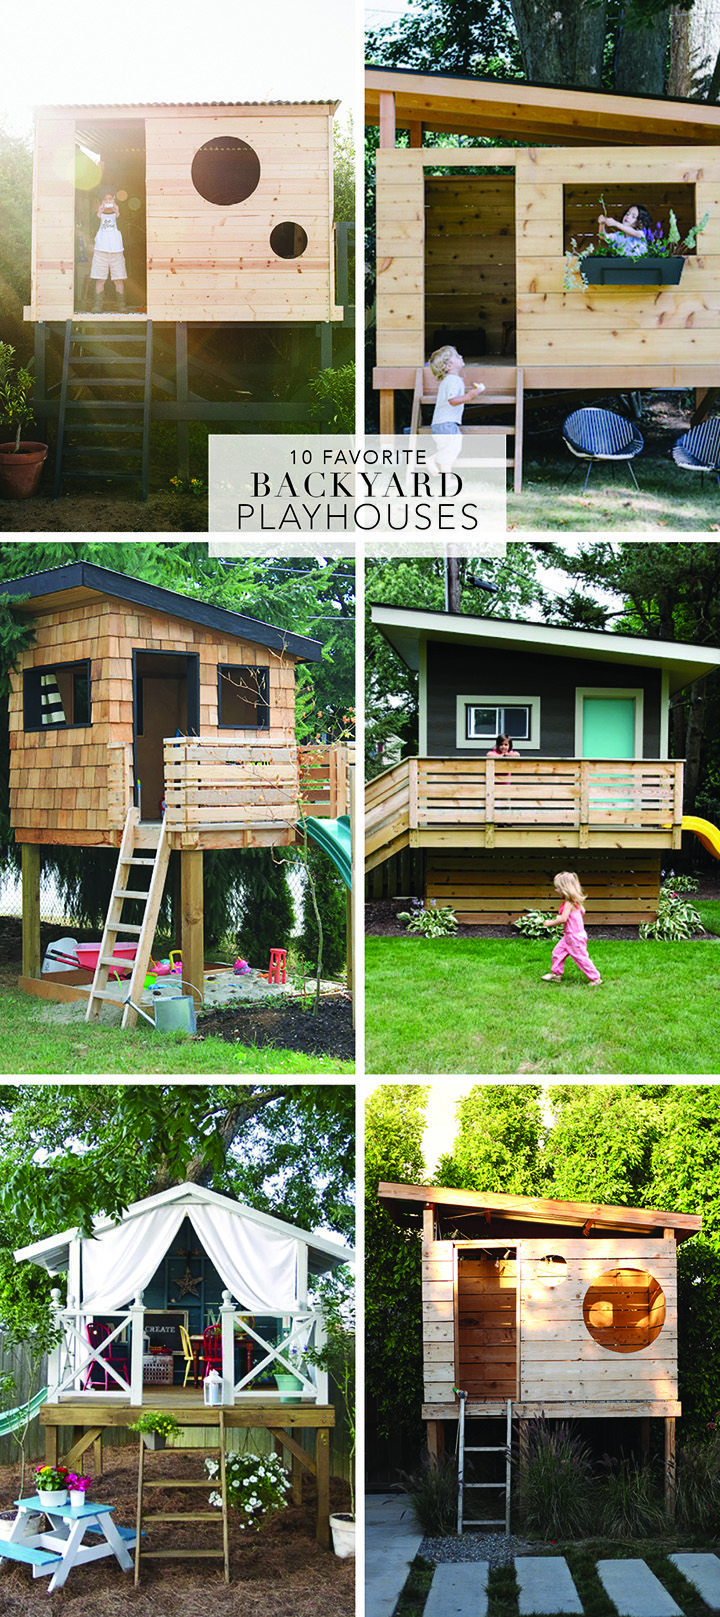 10 Favorite Backyard Playhouses